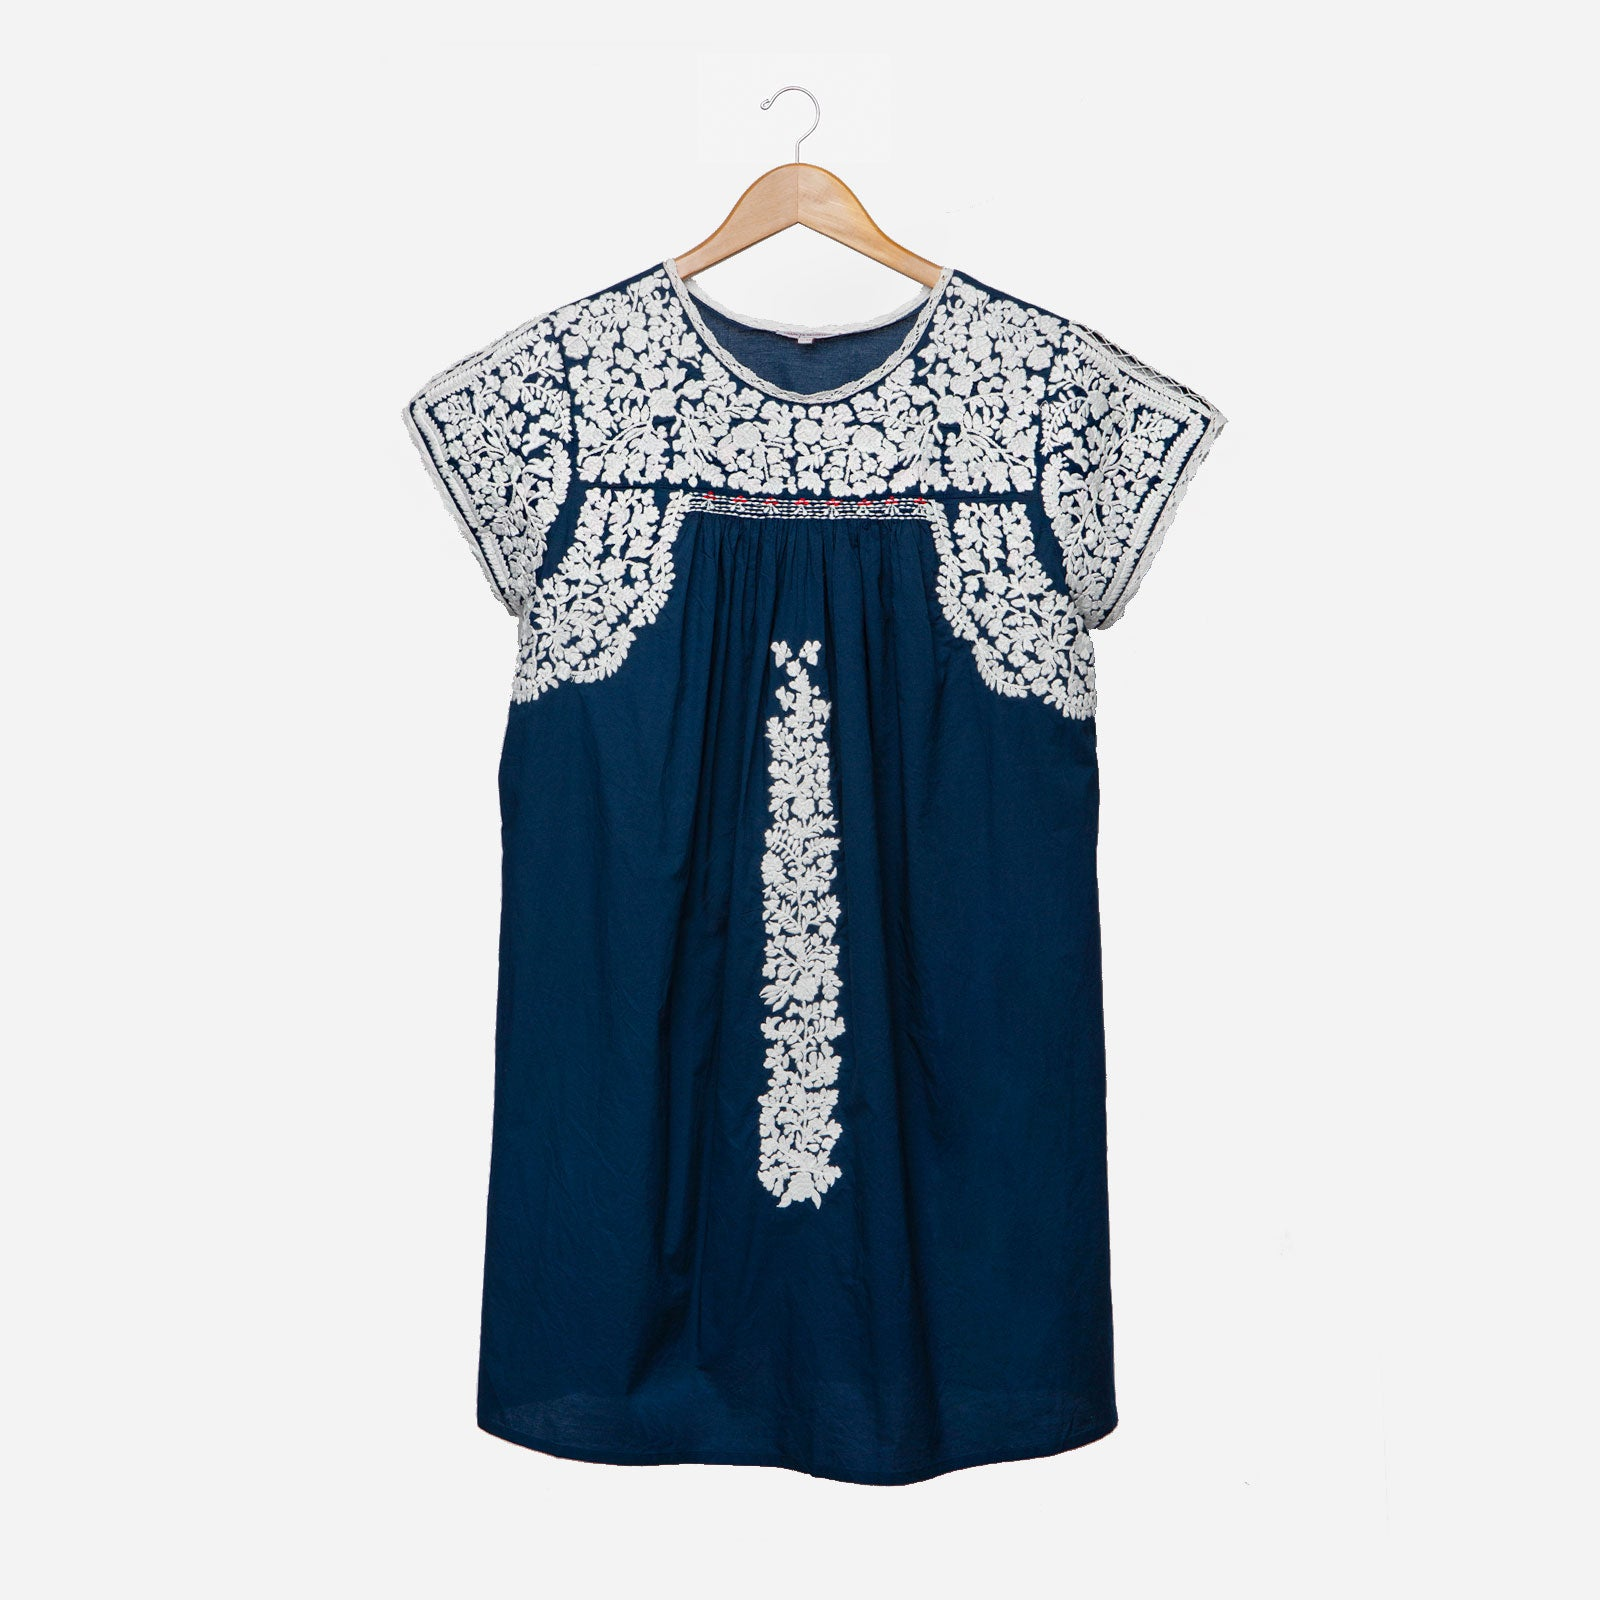 Floral Embroidered Lace Dress Navy Oyster - Frances Valentine